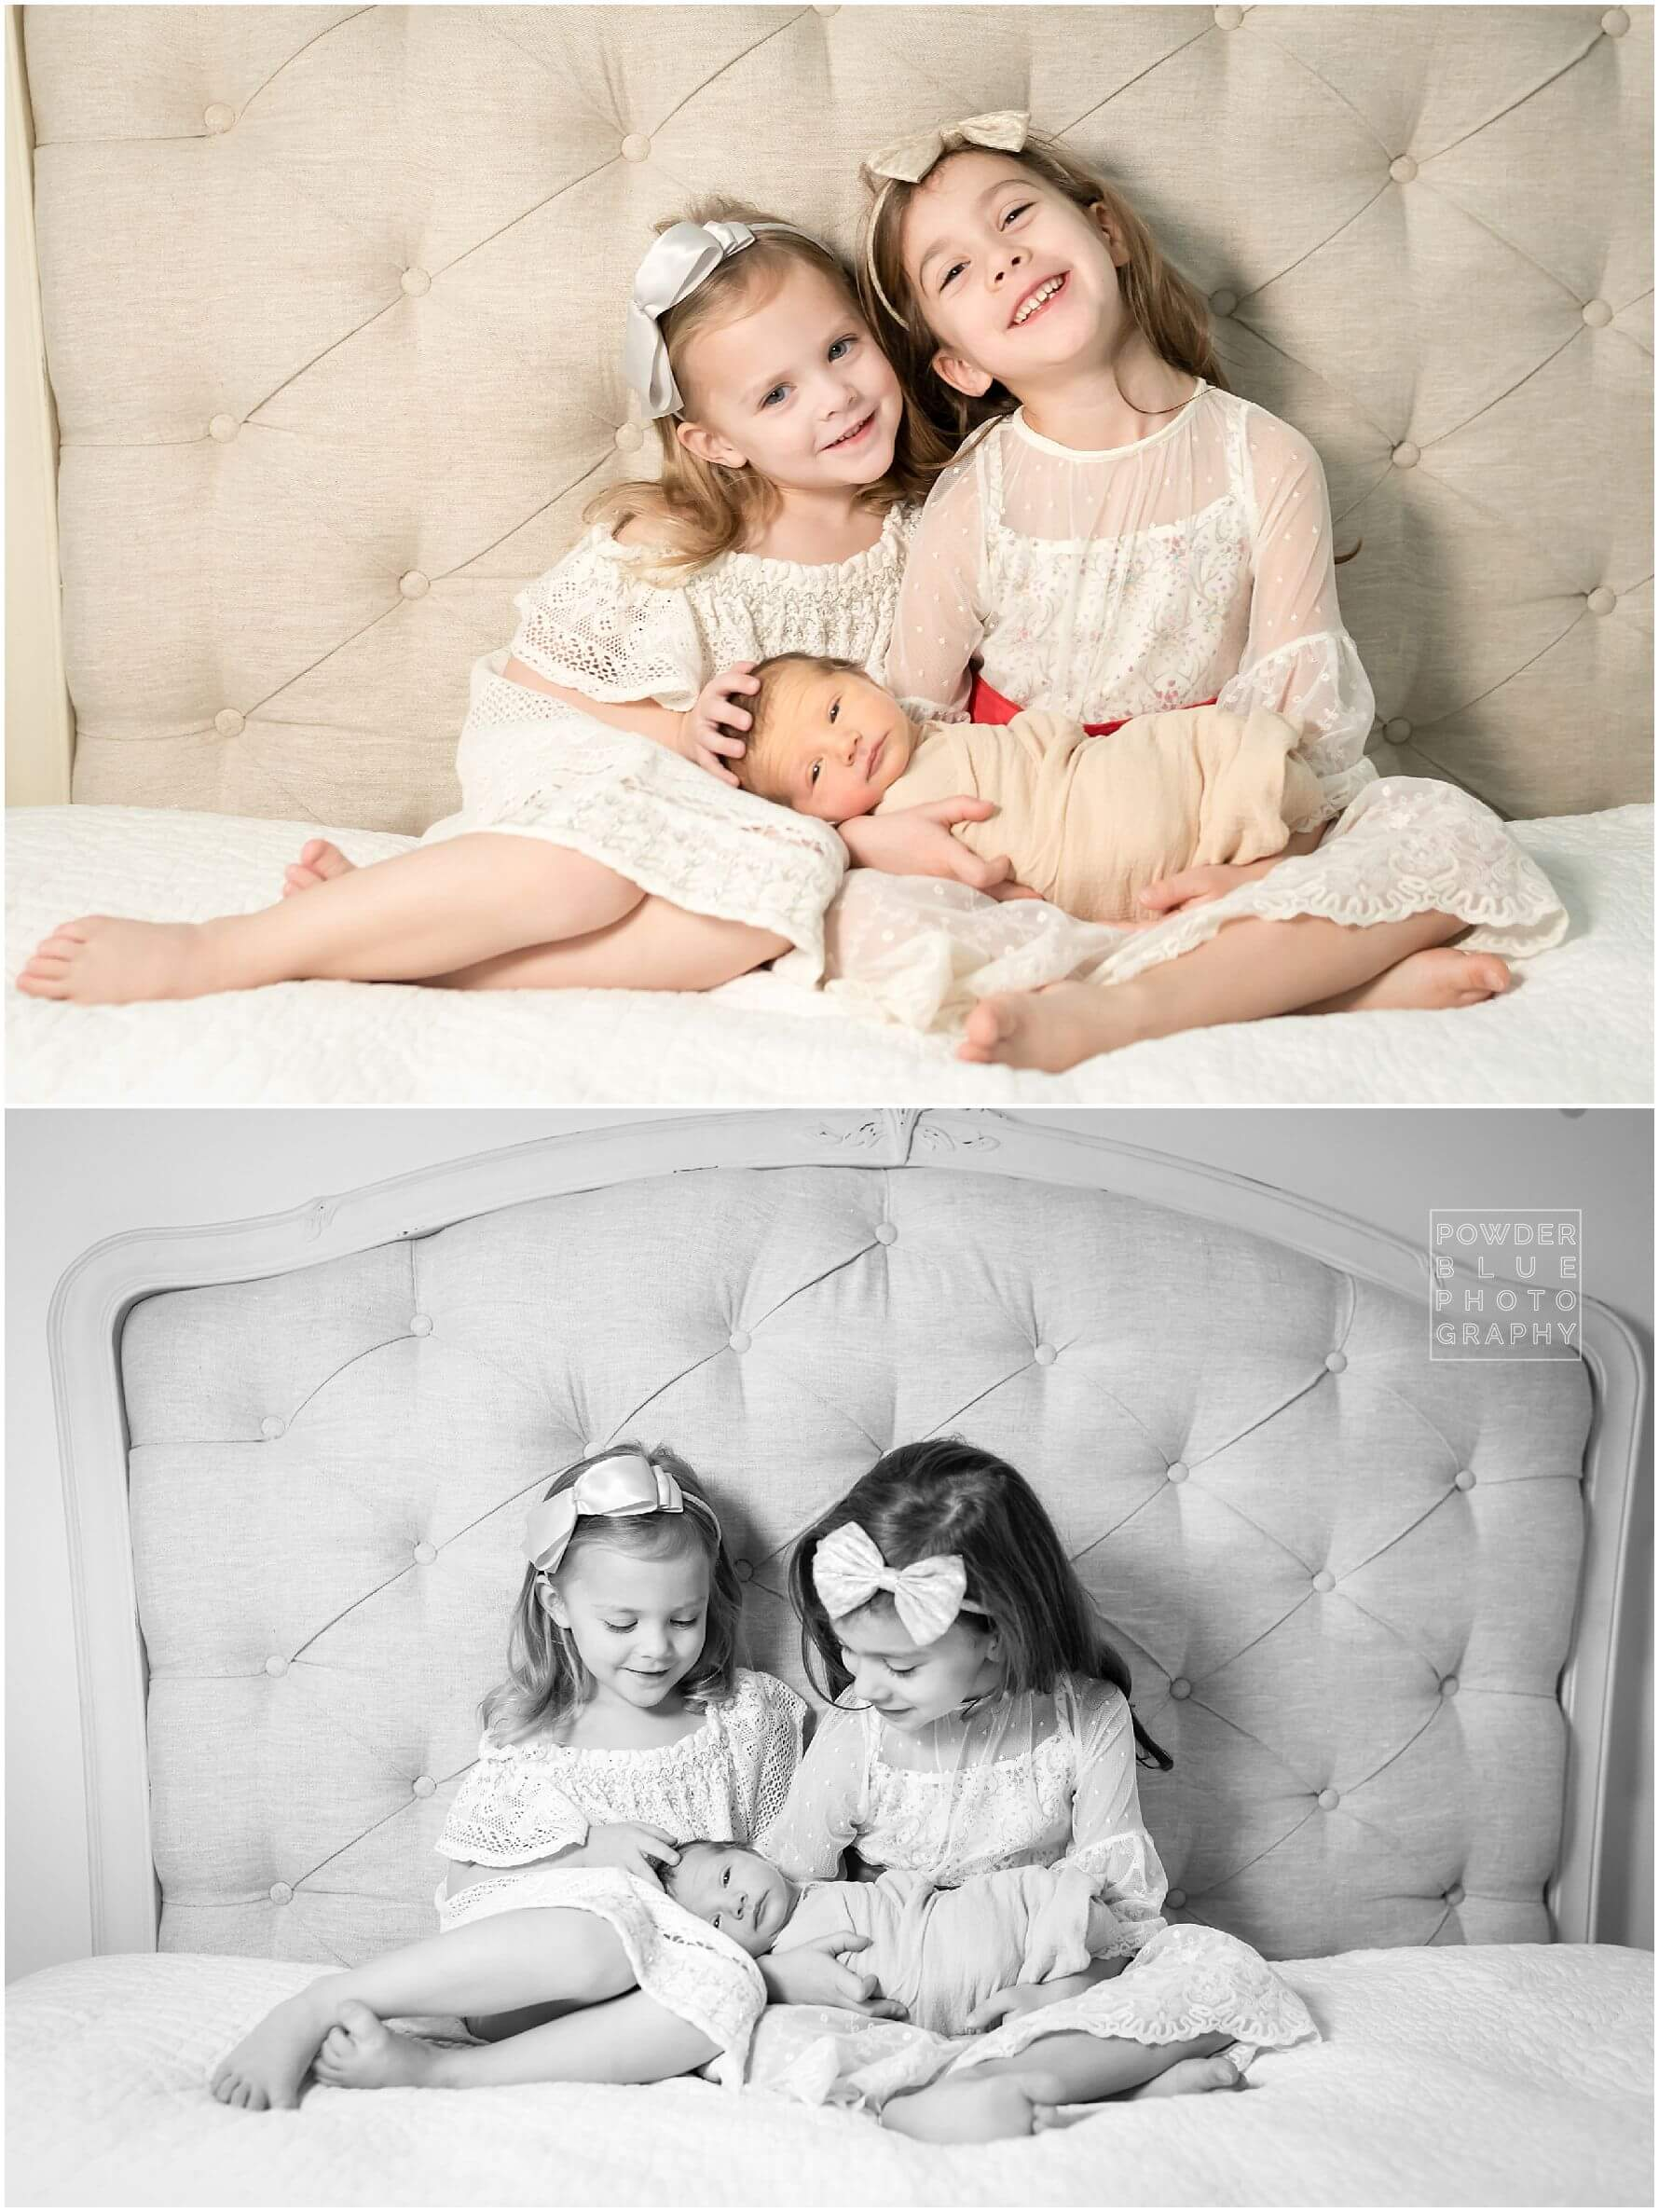 two sisters with their newborn baby brother by Missy Timko, who photographs pittsburgh's newborn babies.